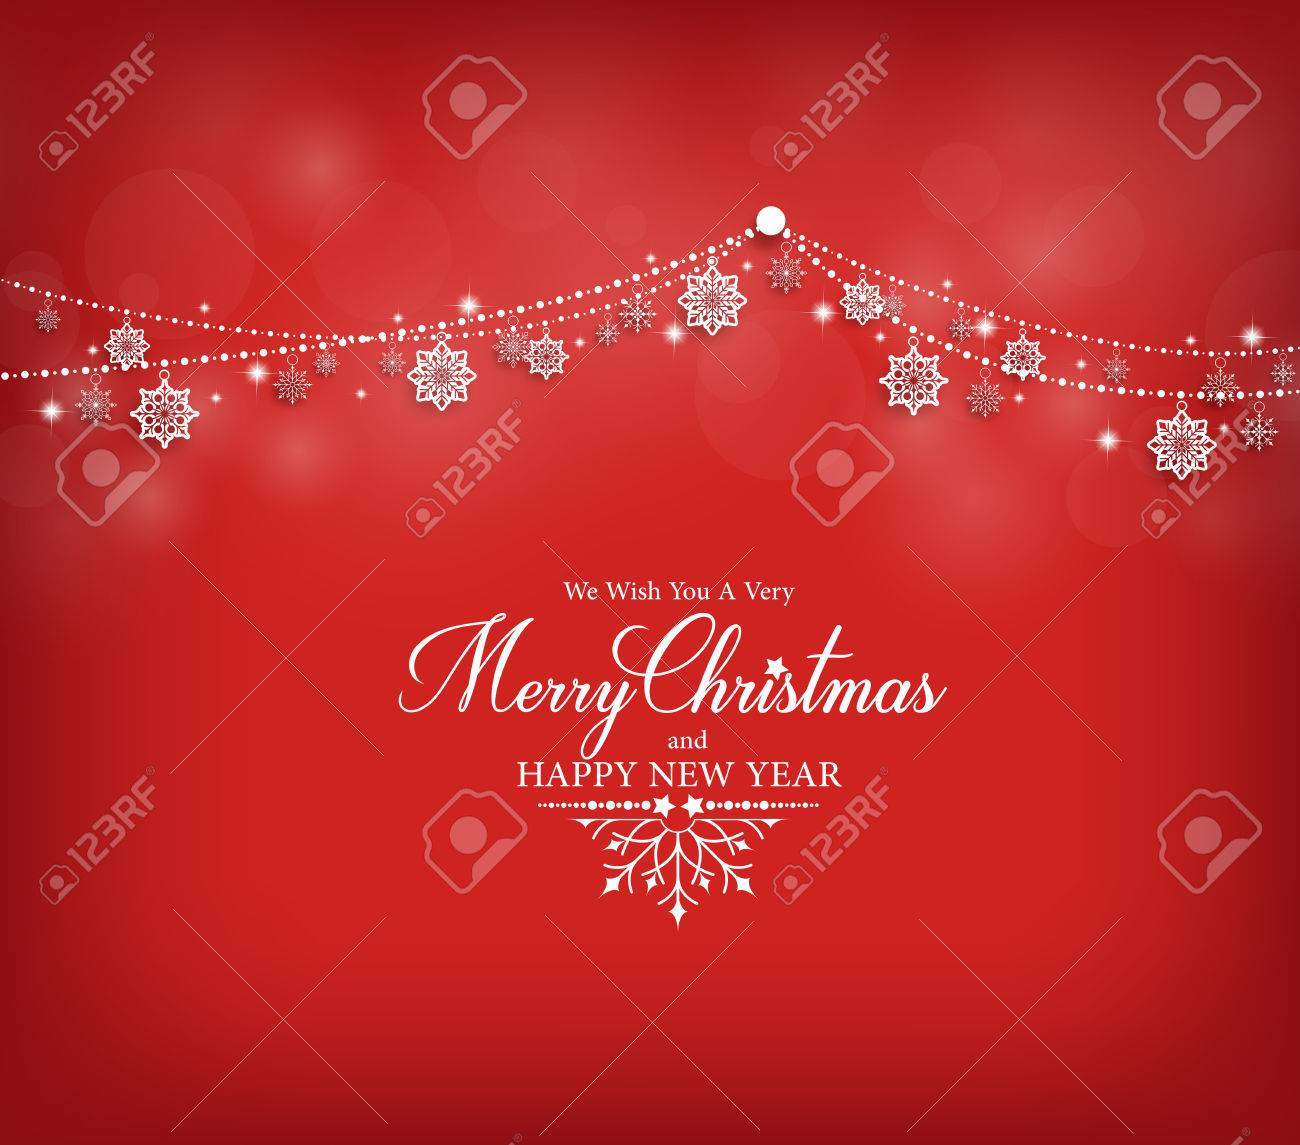 Merry Christmas Greetings Card Design with Snow Flakes Hanging in Red Background. Vector Illustration - 47533520